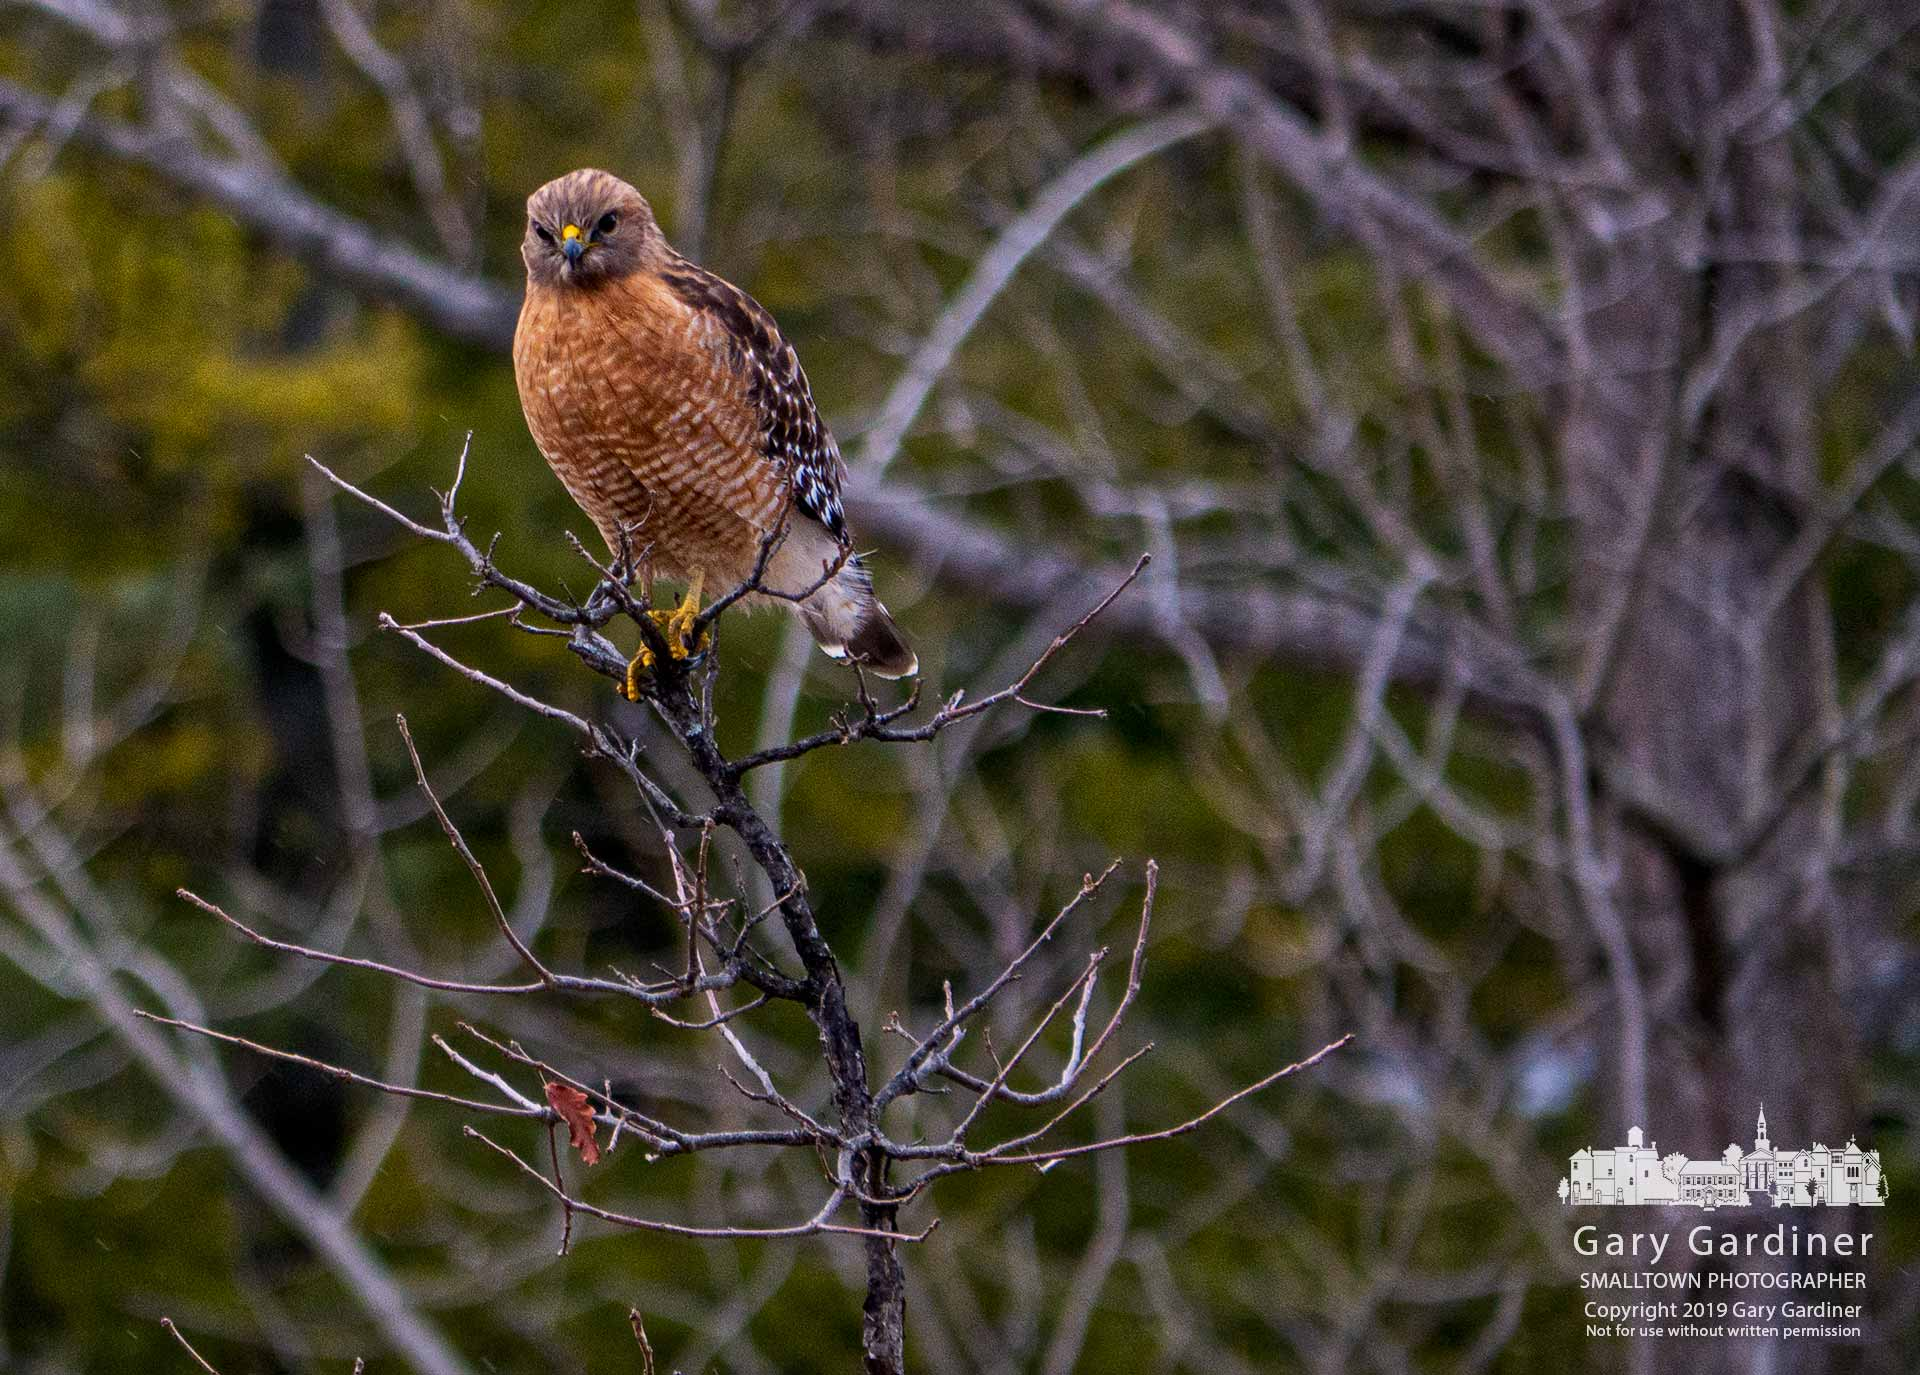 A Red-shouldered Hawk studies the waters and shoreline of the wetlands at Highlands Park from his perch in a sapling growing along the shoreline of the pond. My Final Photo for Feb. 4, 2019.